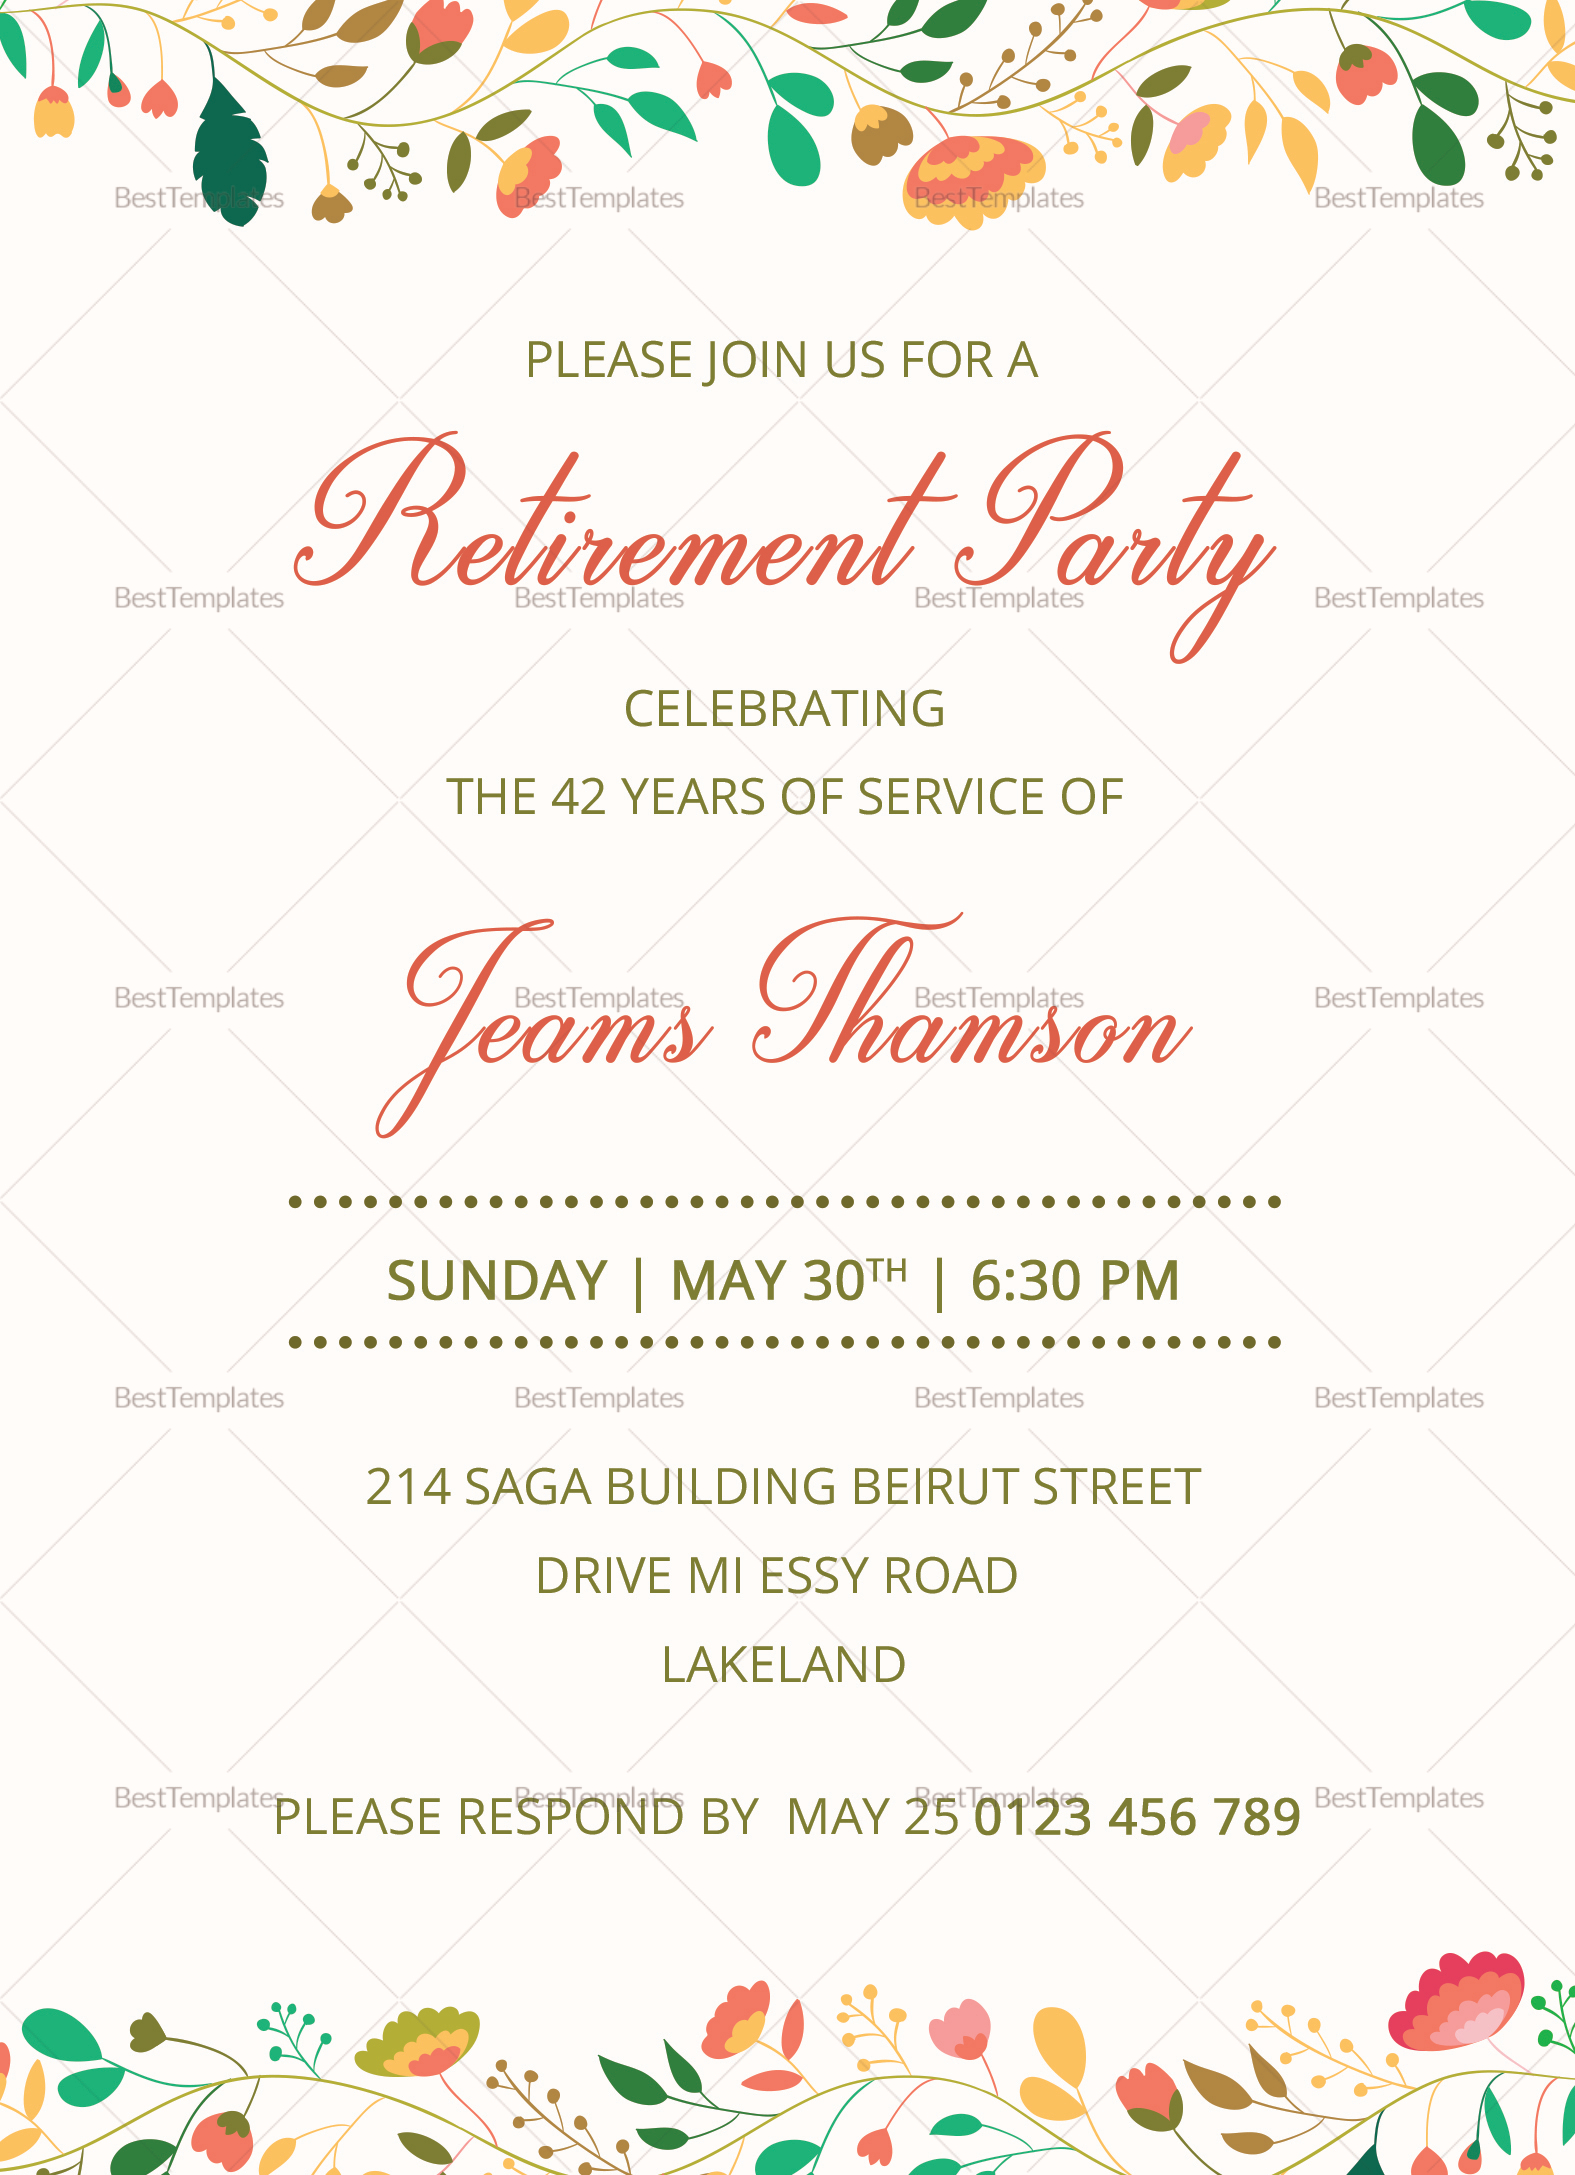 corporate retirement party invitation design template in psd word